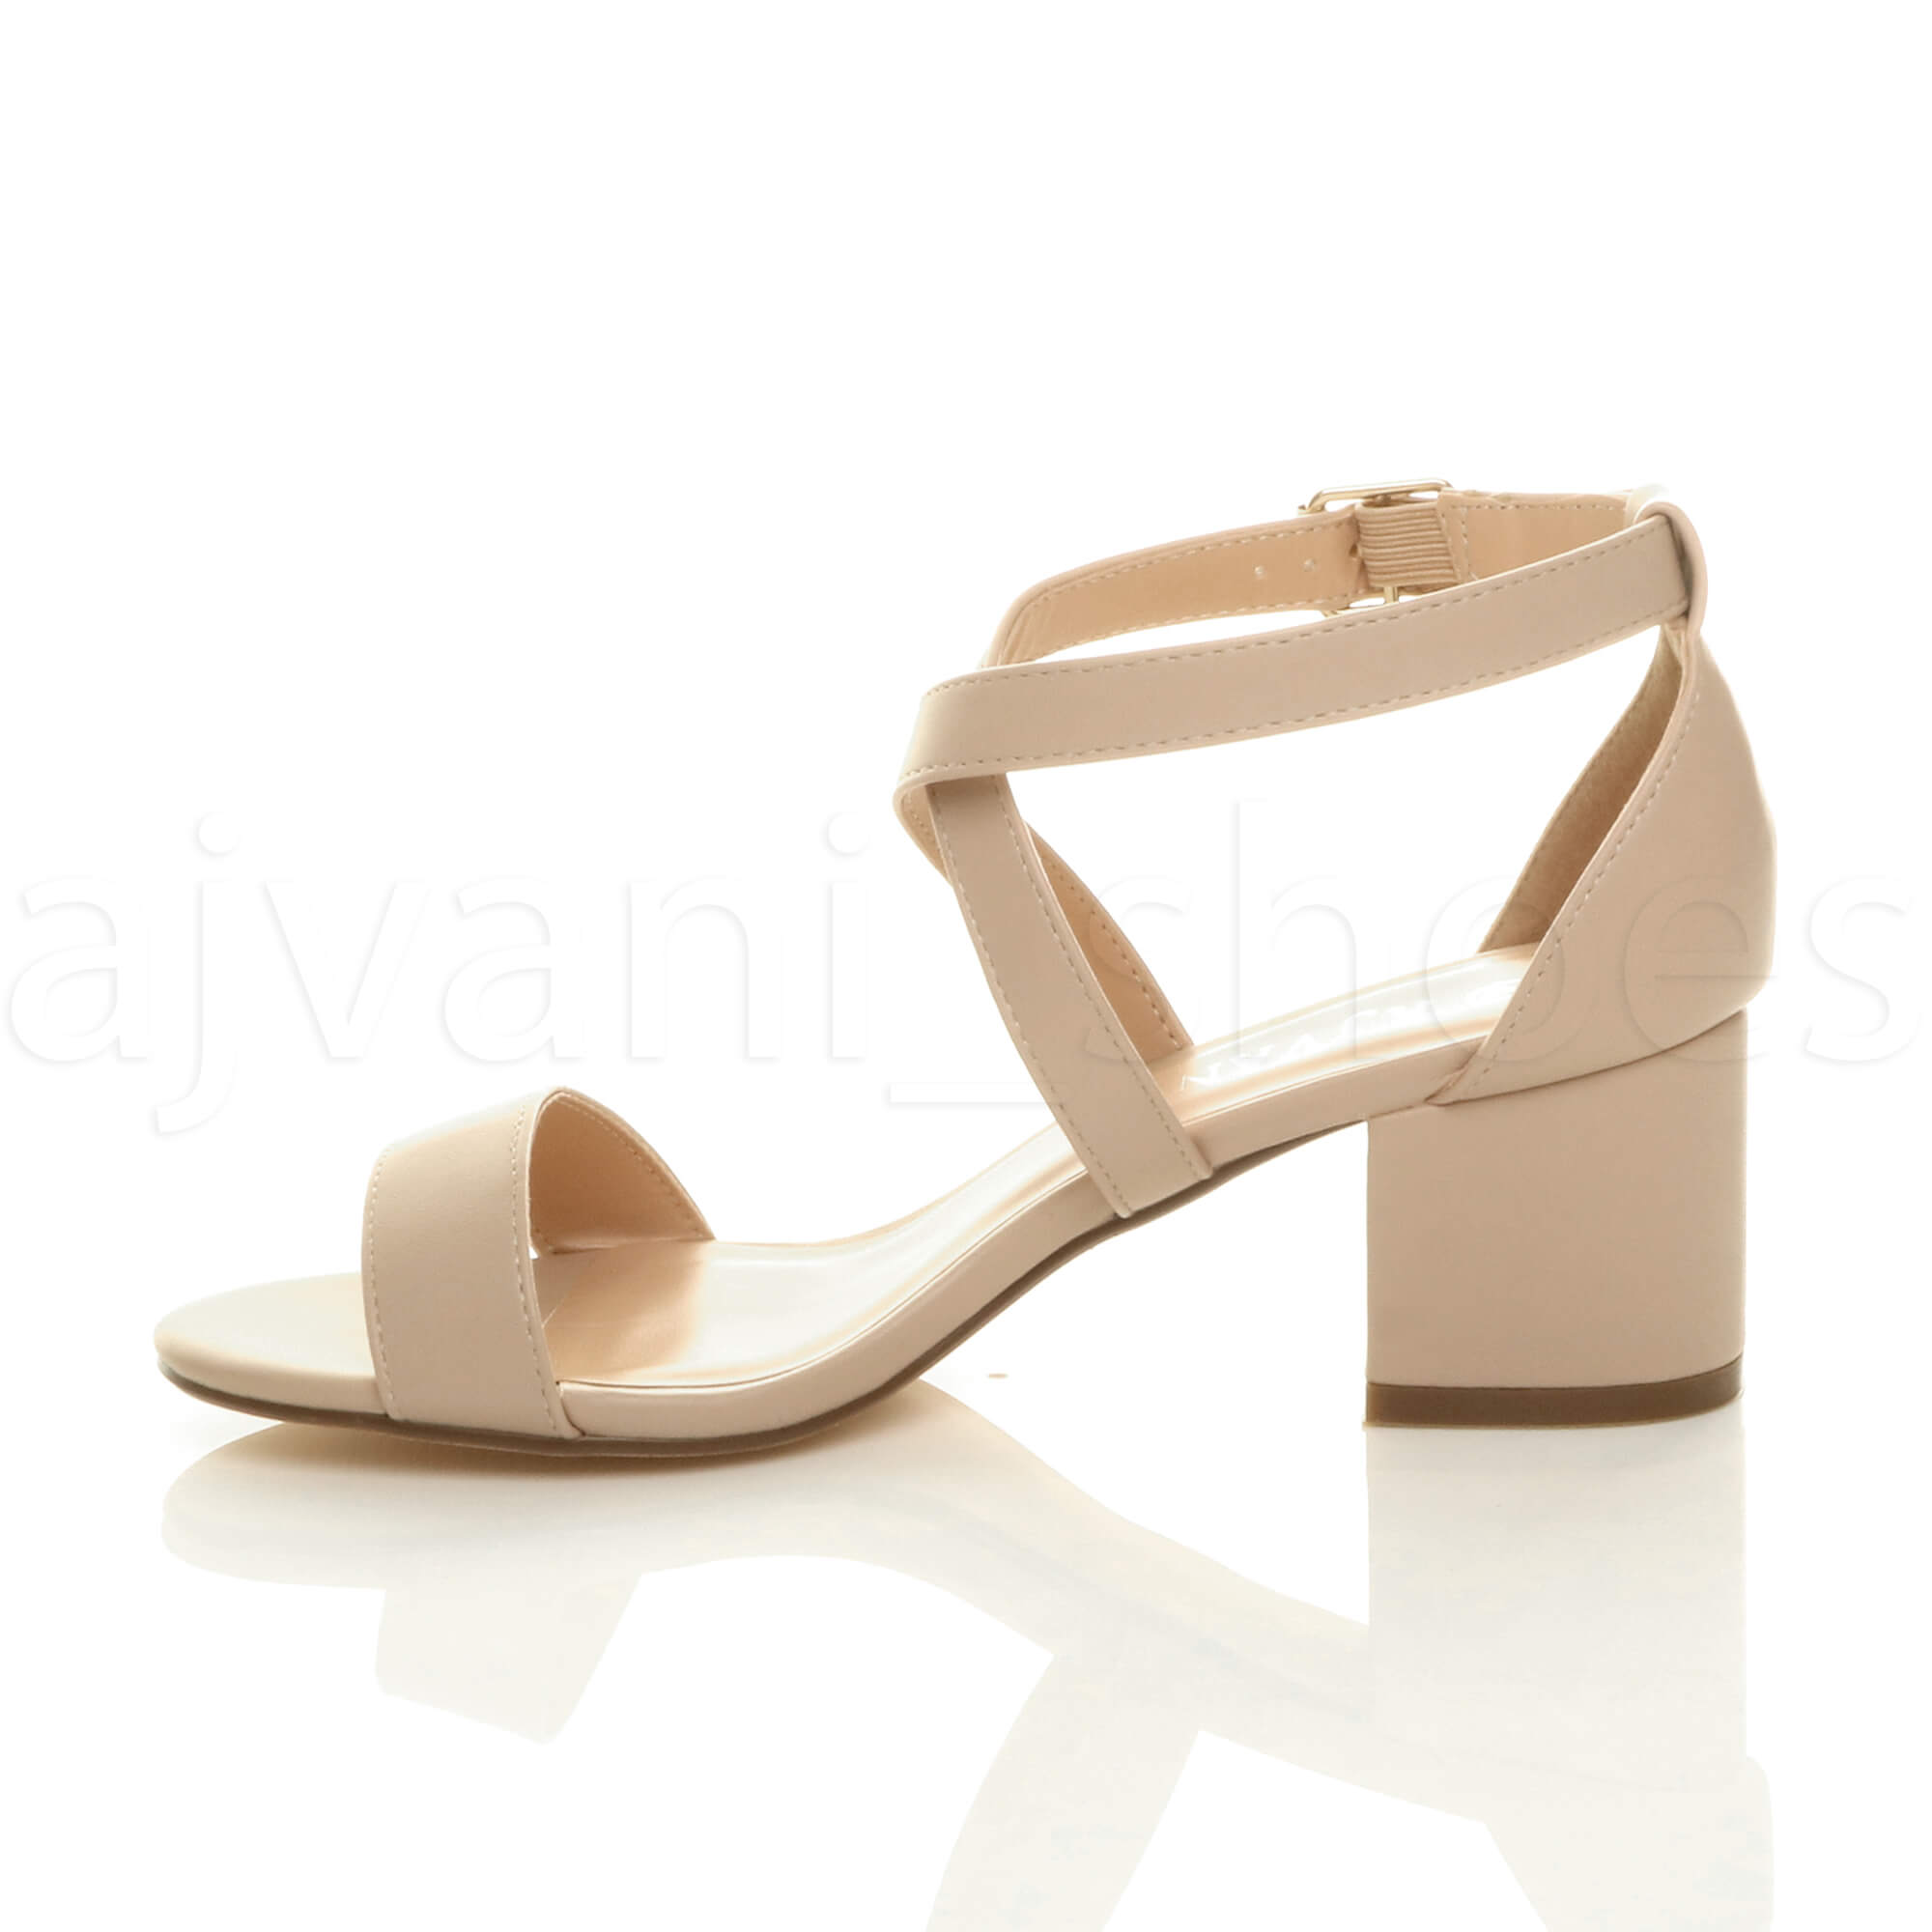 WOMENS-LADIES-MID-LOW-BLOCK-HEEL-CROSS-STRAPS-PARTY-STRAPPY-SANDALS-SHOES-SIZE thumbnail 53